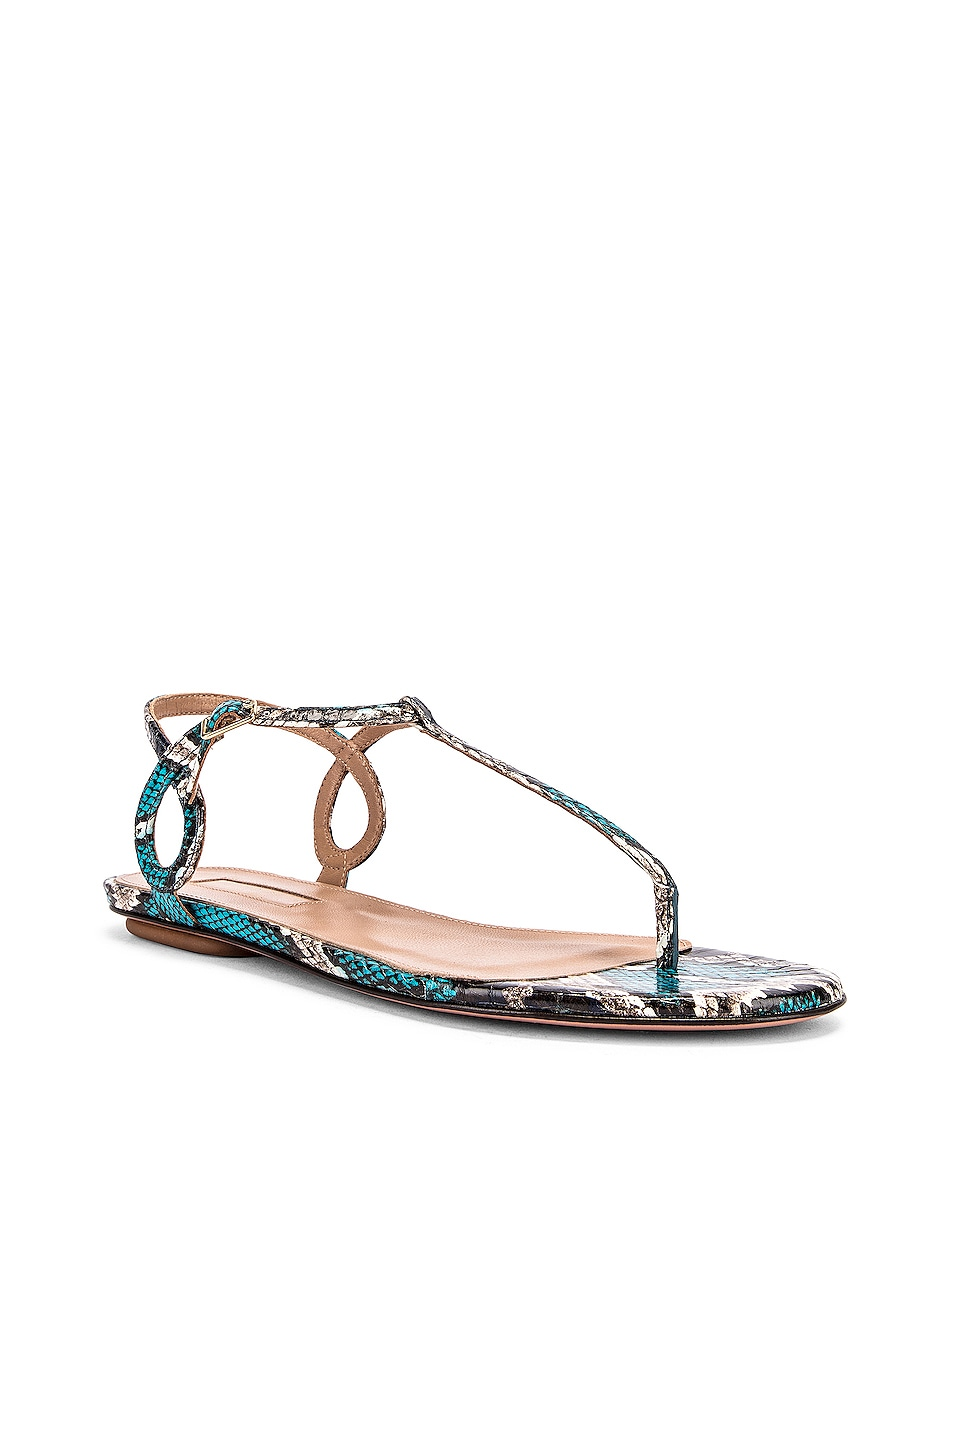 Image 2 of Aquazzura Almost Bare Jungle Snake Sandal Flat in Mix Blue